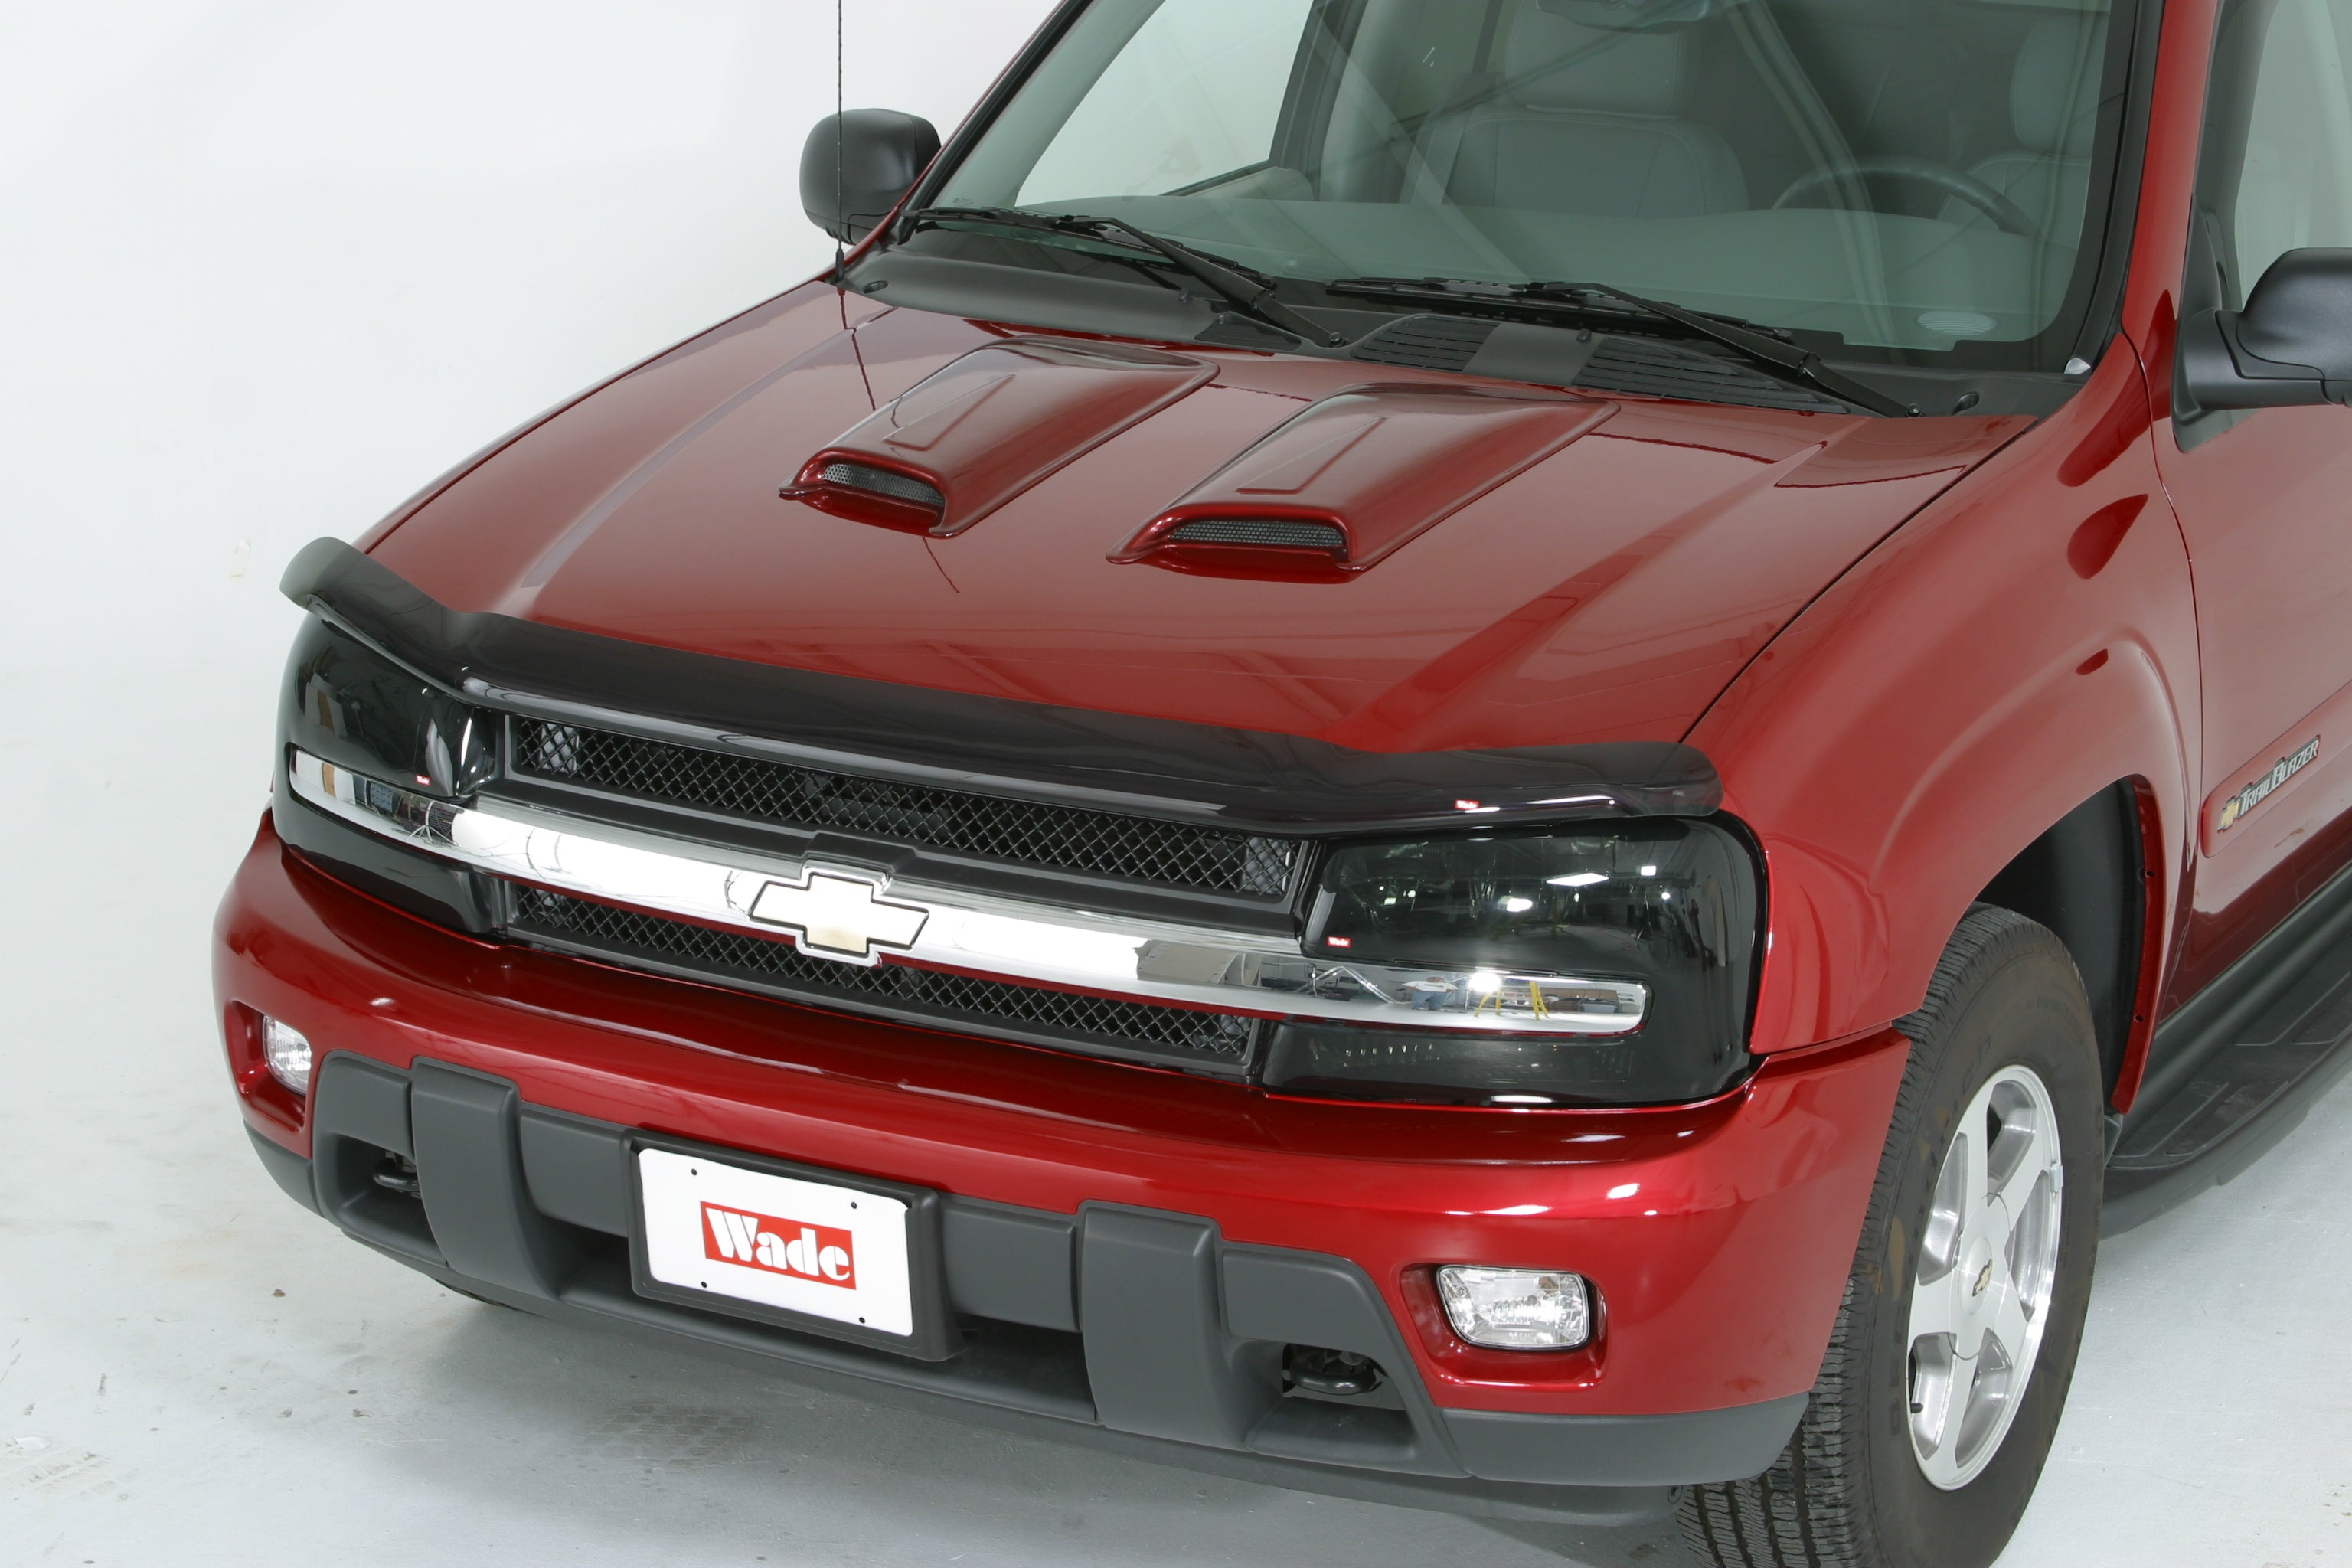 1994 Nissan Pickup 4WD (flush mount) Head Light Covers